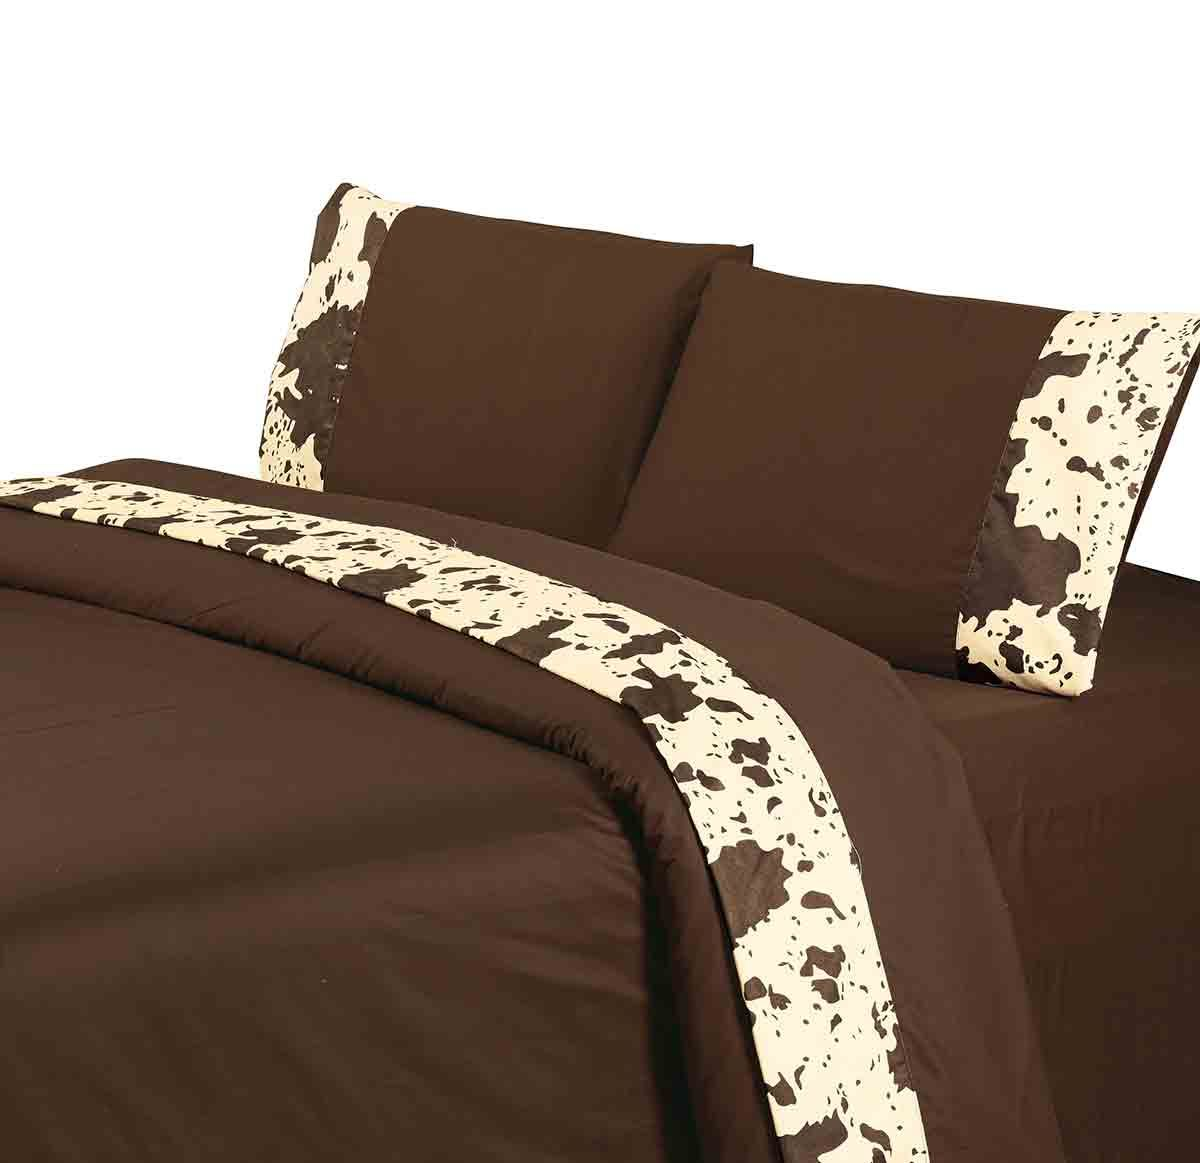 Chocolate Cowhide Sheet Set - Queen